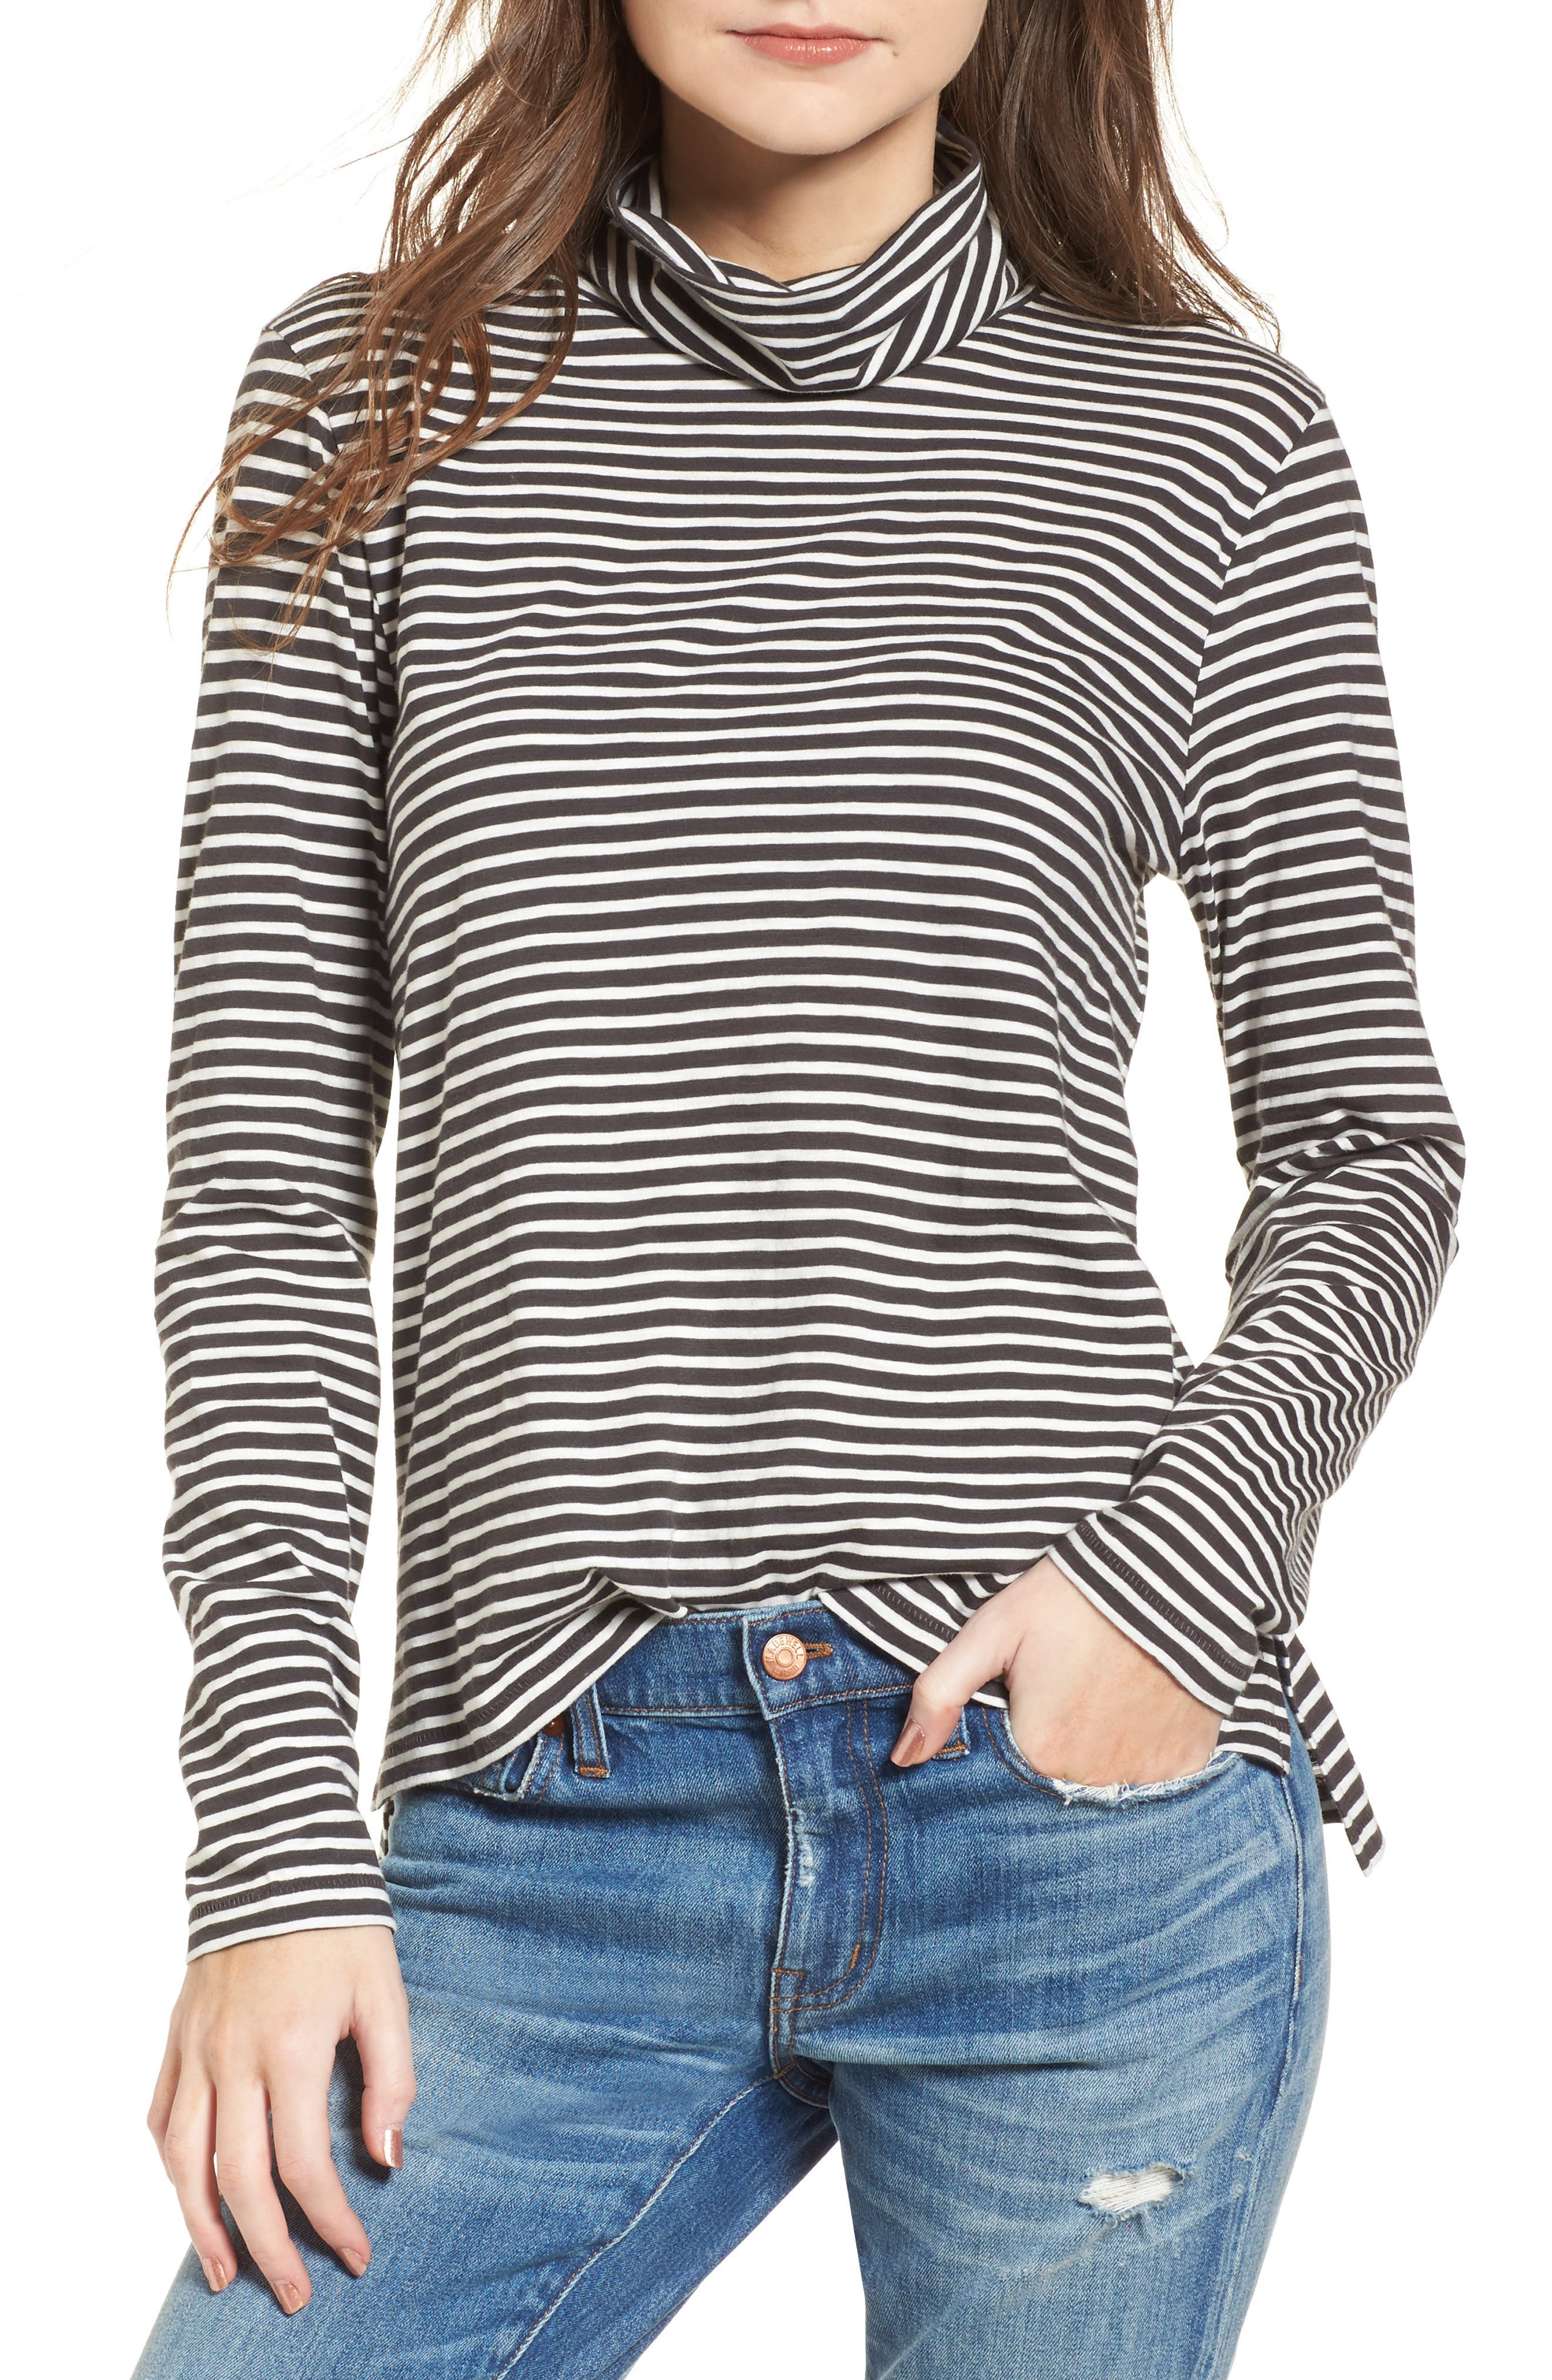 MADEWELL,                             Whisper Cotton Turtleneck Top,                             Main thumbnail 1, color,                             021